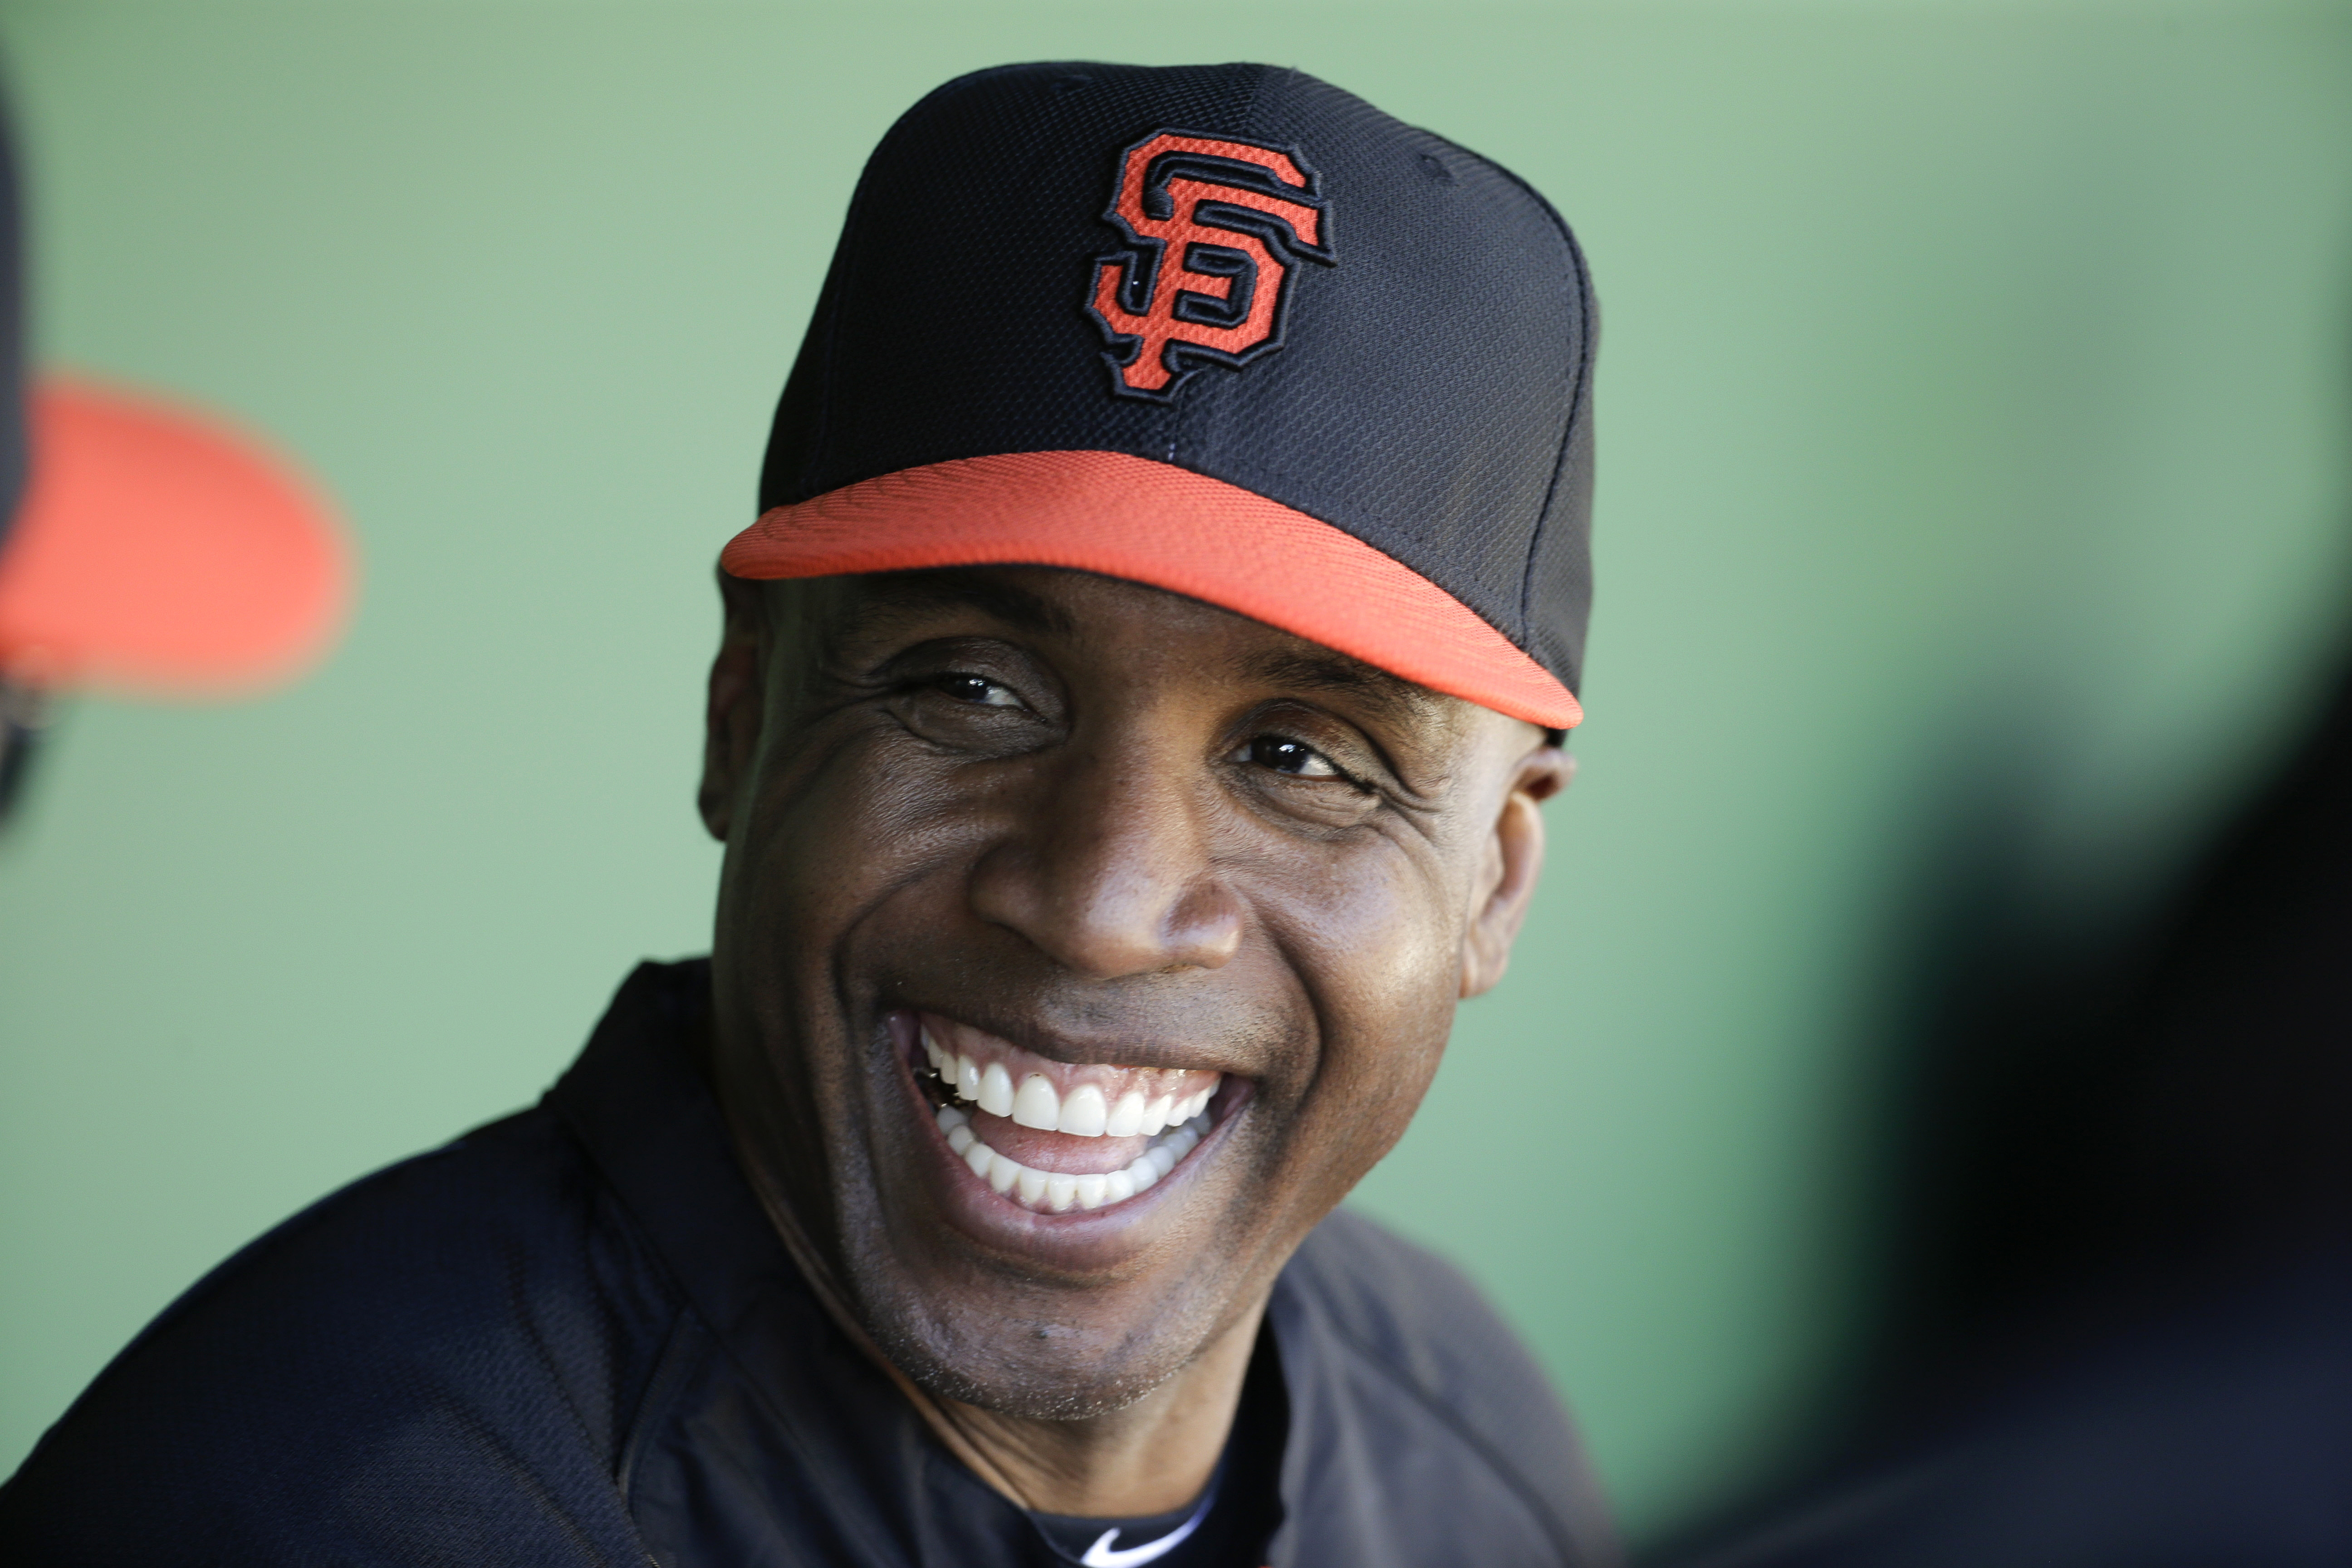 FILE - In this March 10, 2014, file photo, former San Francisco Giants Barry Bonds chats to the dugout during a spring training baseball game in Scottsdale, Ariz. Bonds' obstruction of justice conviction reversed by 9th US Circuit Court of Appeals on Wedn